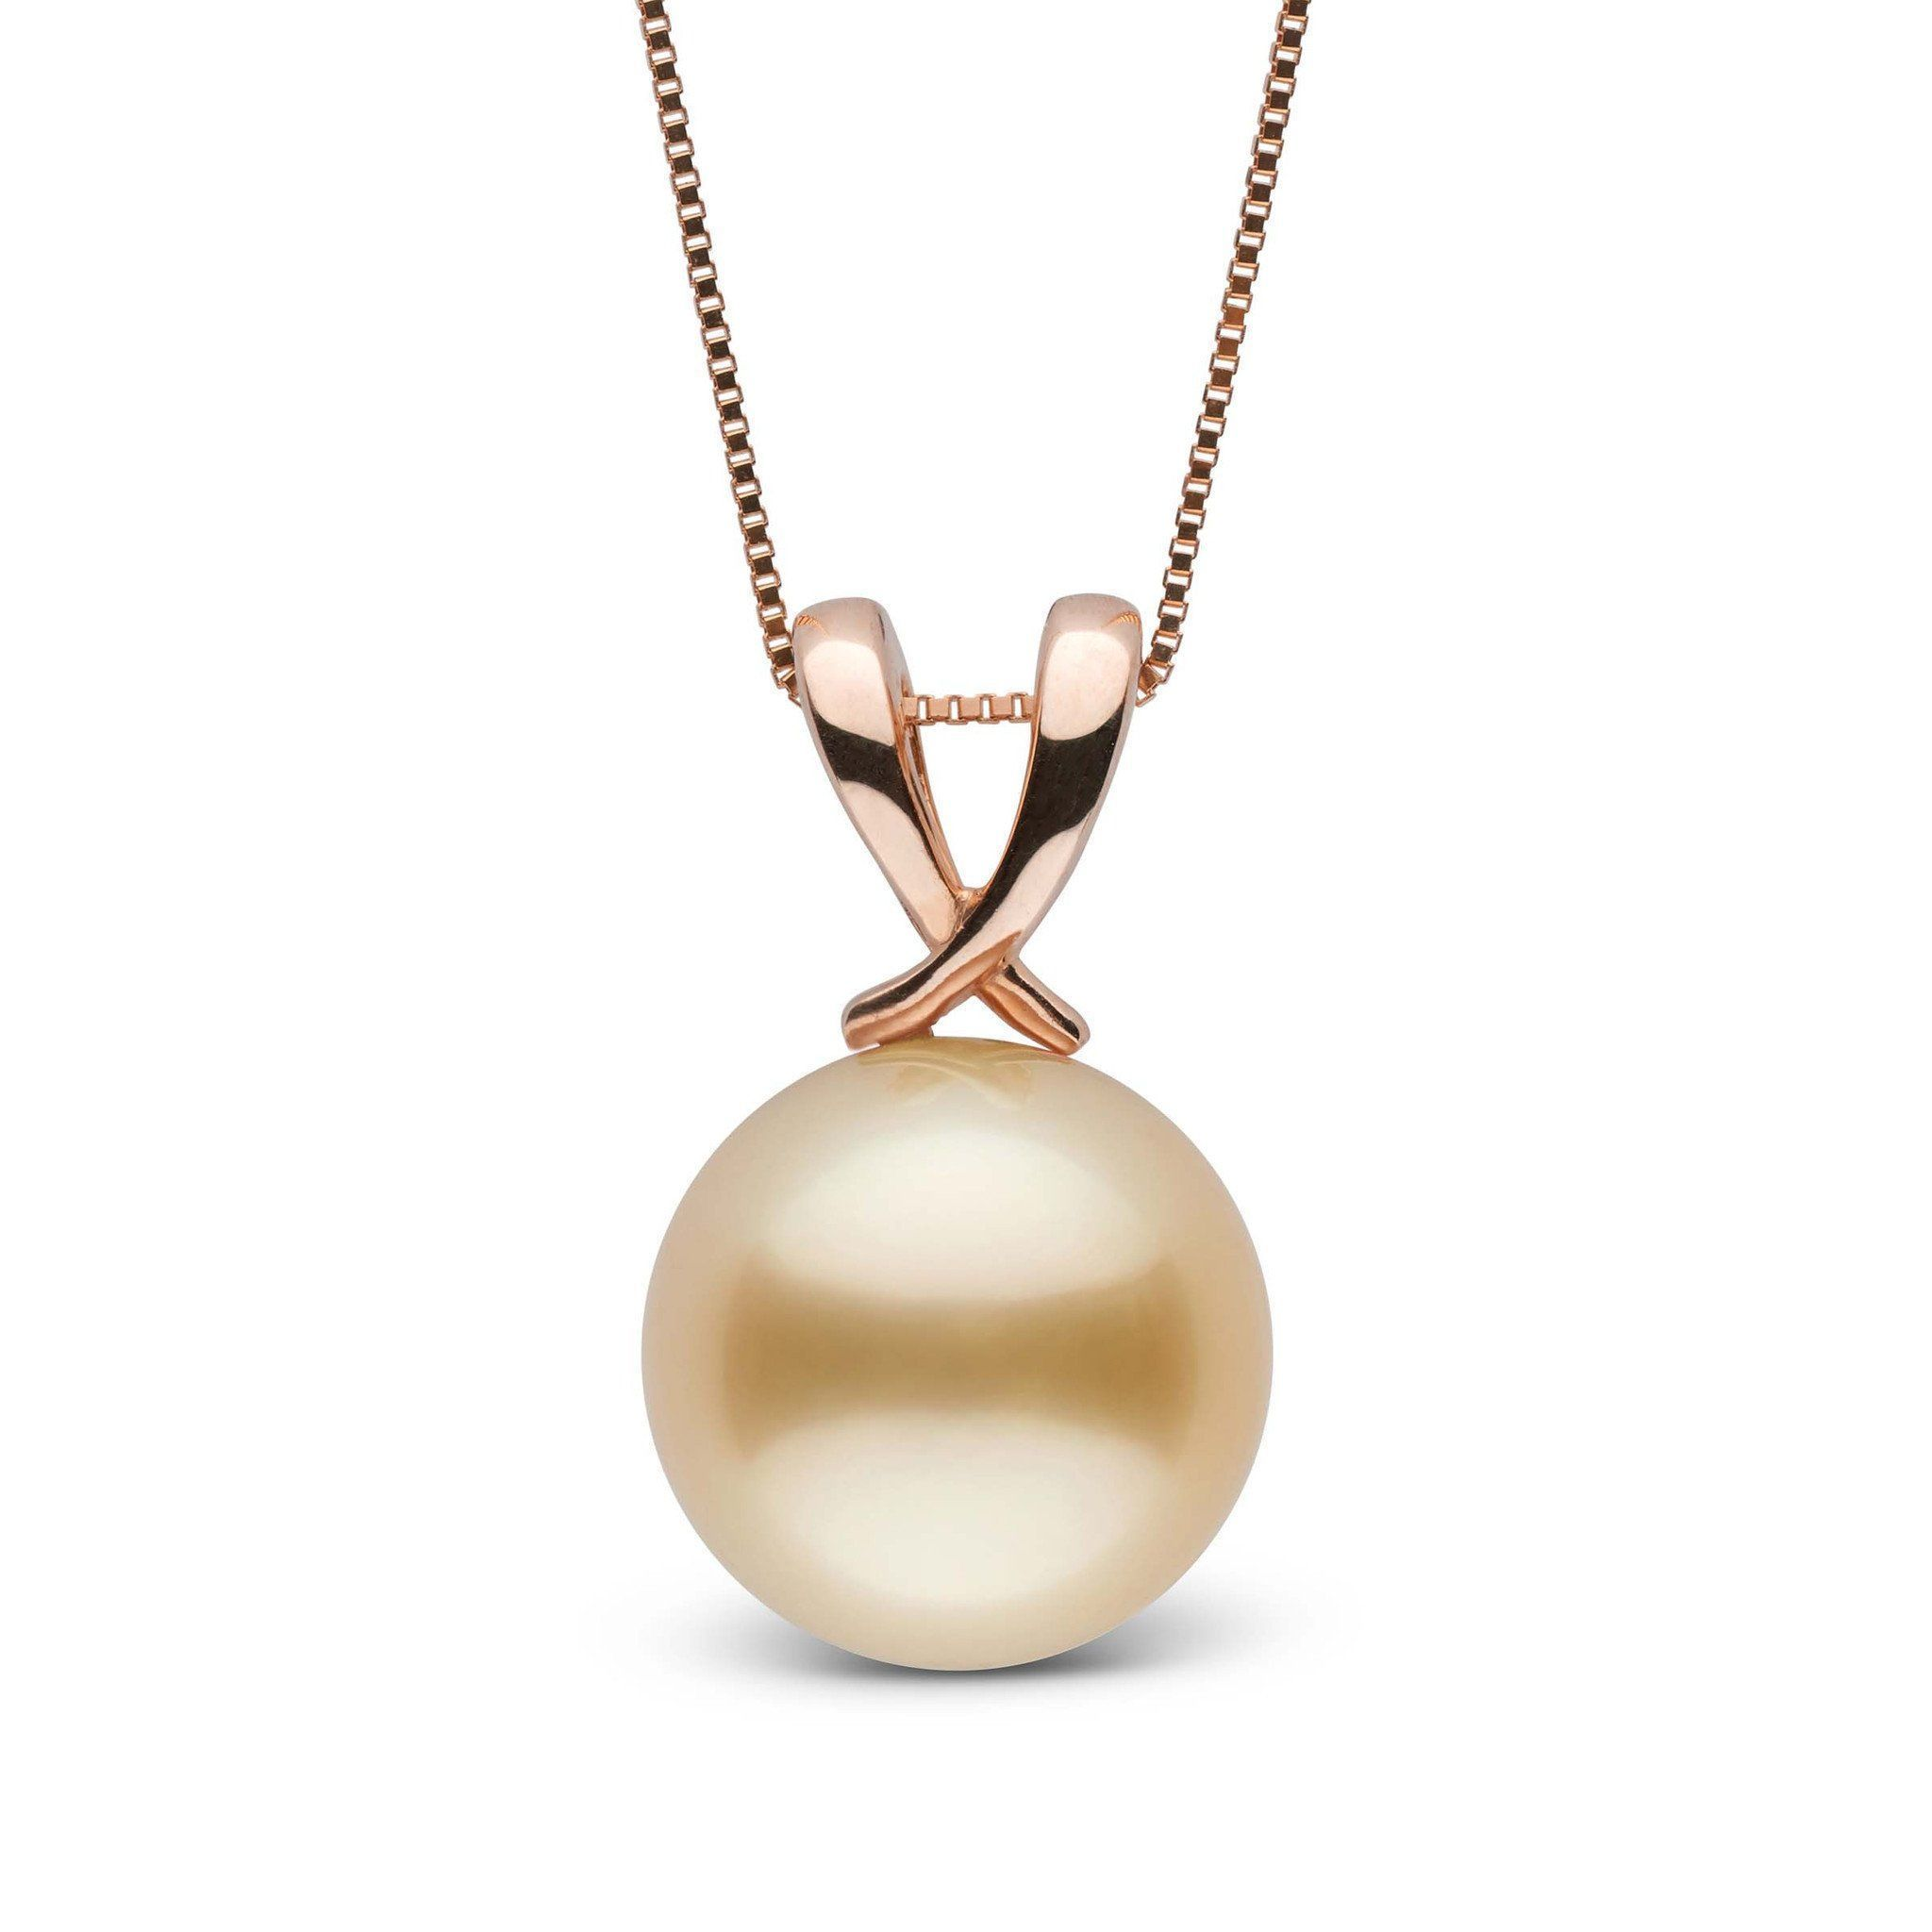 Ribbon Collection Golden 11.0-12.0 mm South Sea Pearl Pendant